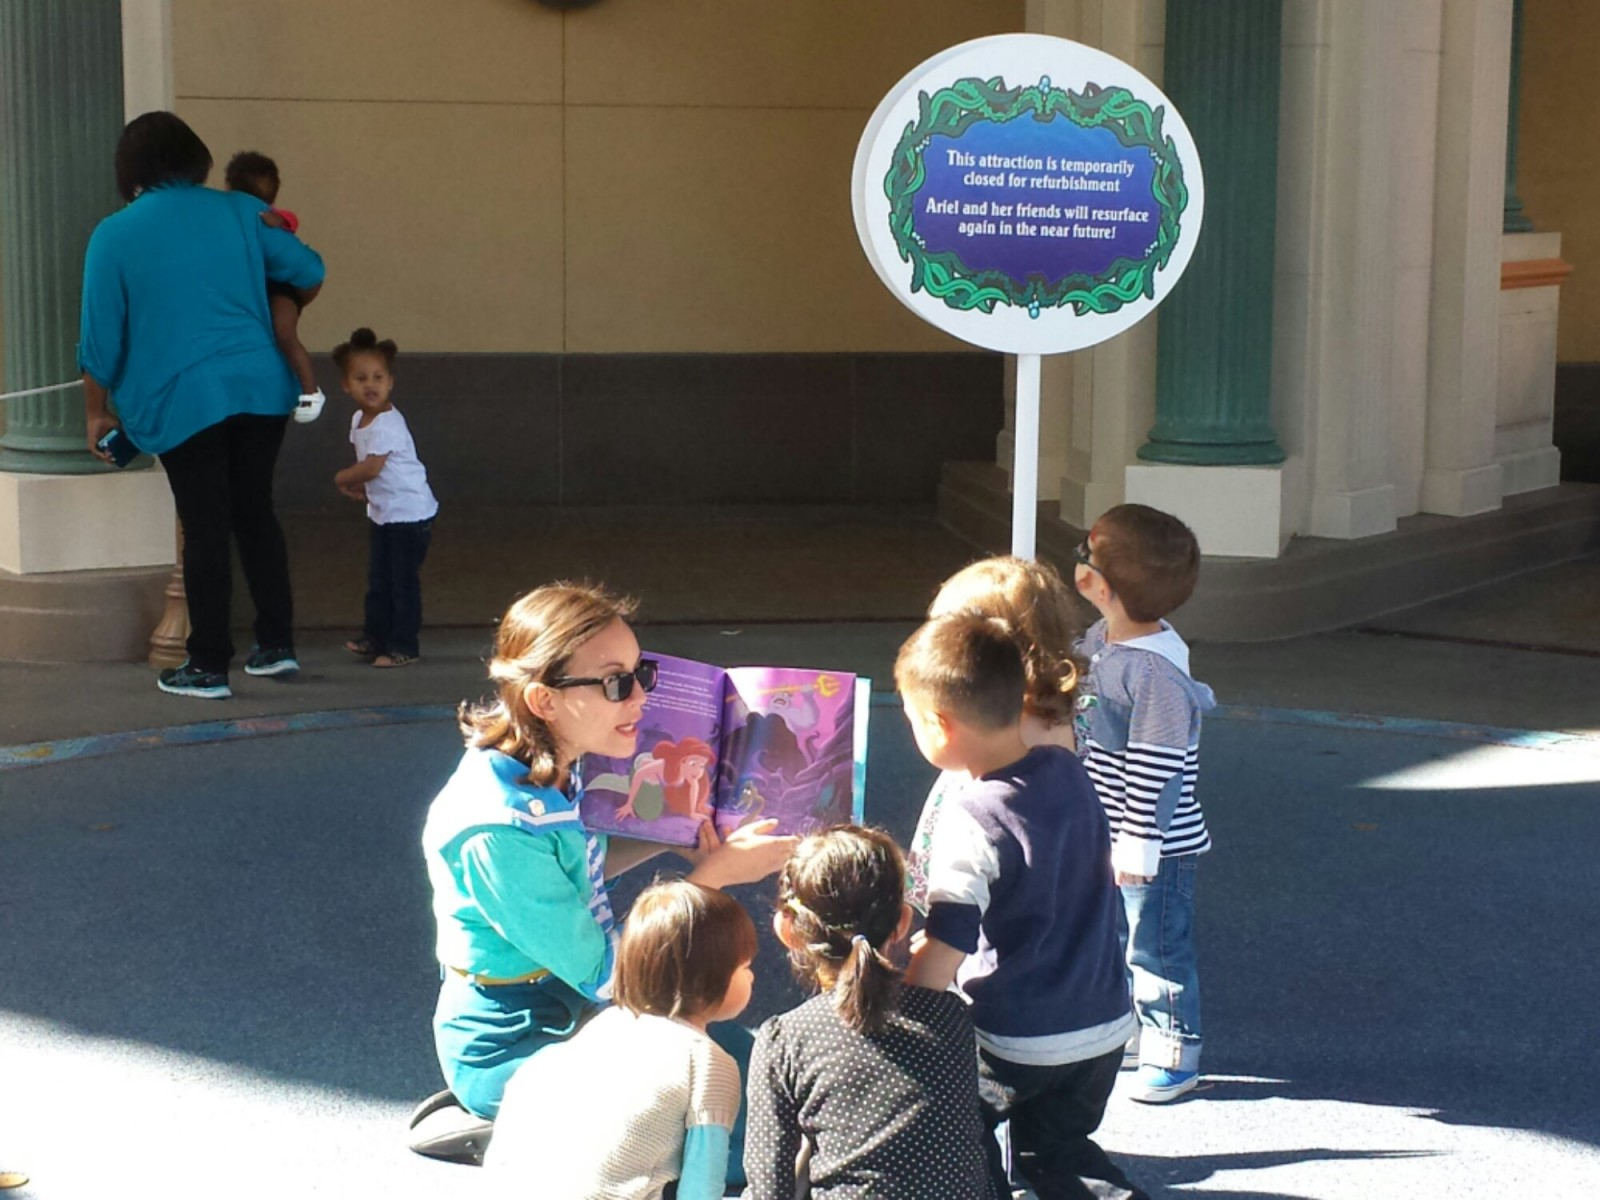 A cast member reading a Little Mermaid book to guests since the attraction is closed